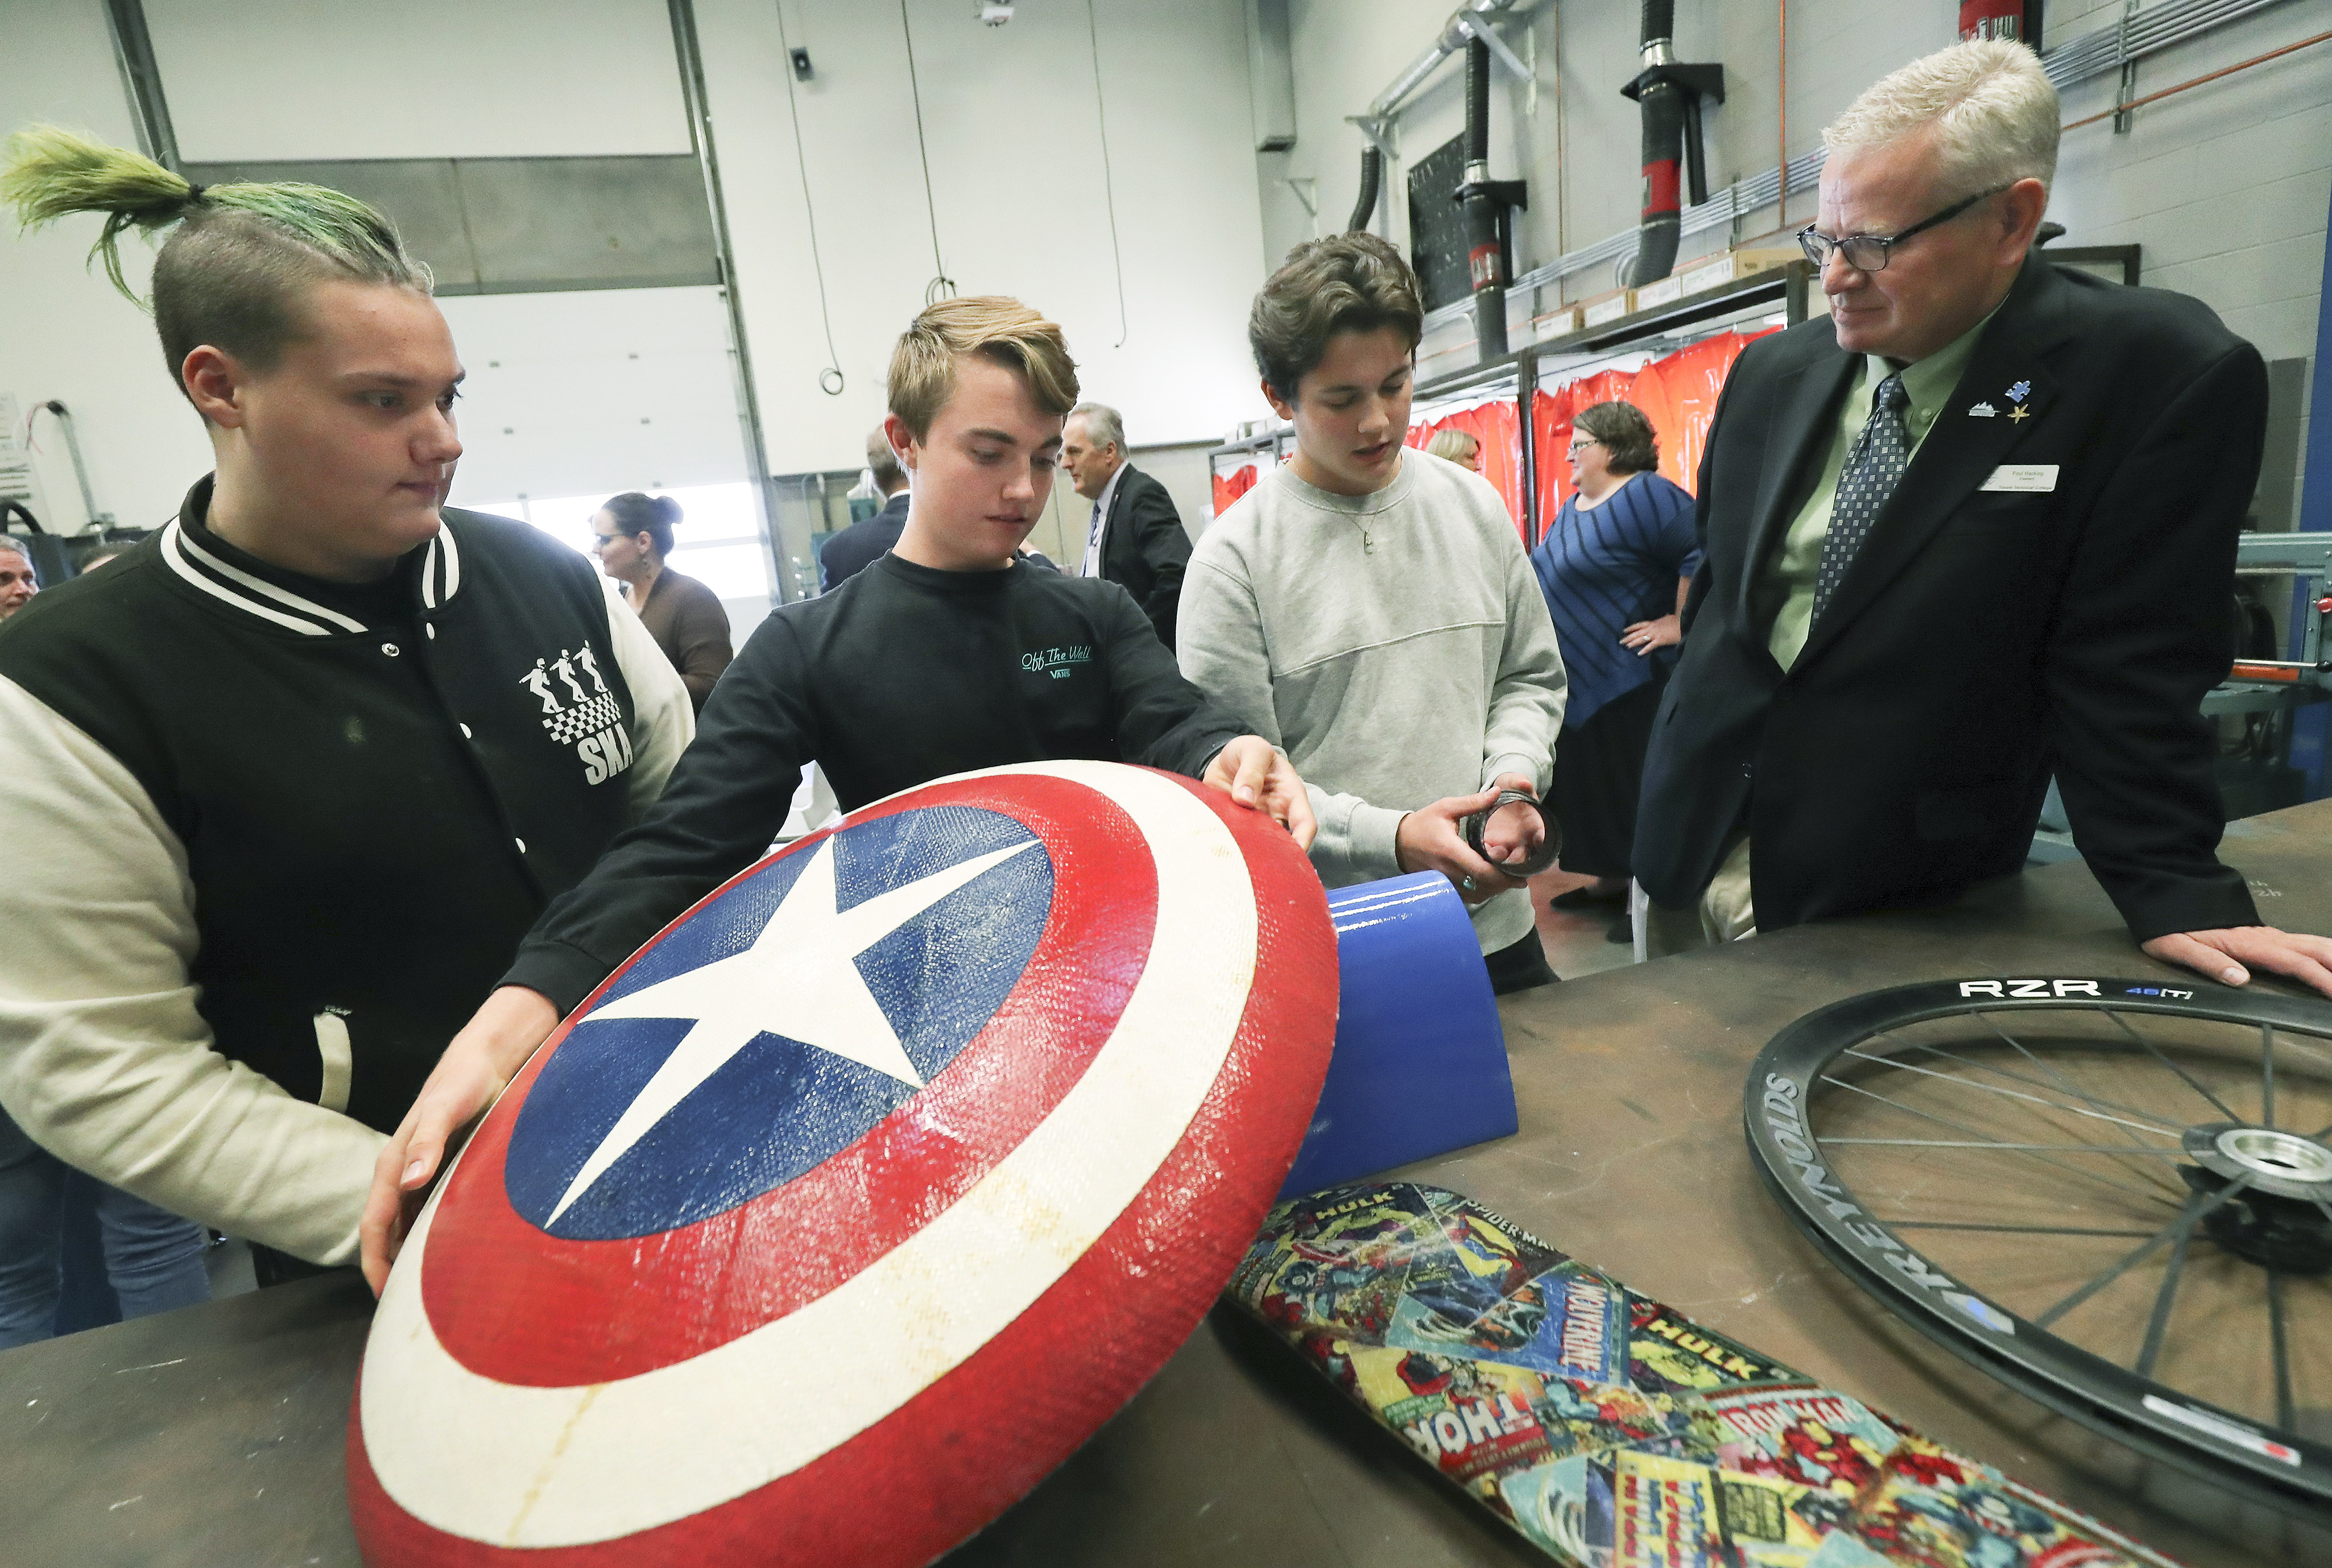 Tooele Technical College students Raven Robb, Zane Manzione and Peter Webb look over composite projects with school President Paul Hacking in Tooele on Wednesday, Sept. 11, 2019. The Utah Aerospace Pathways program is expanding at the college and the Tooele County School District.